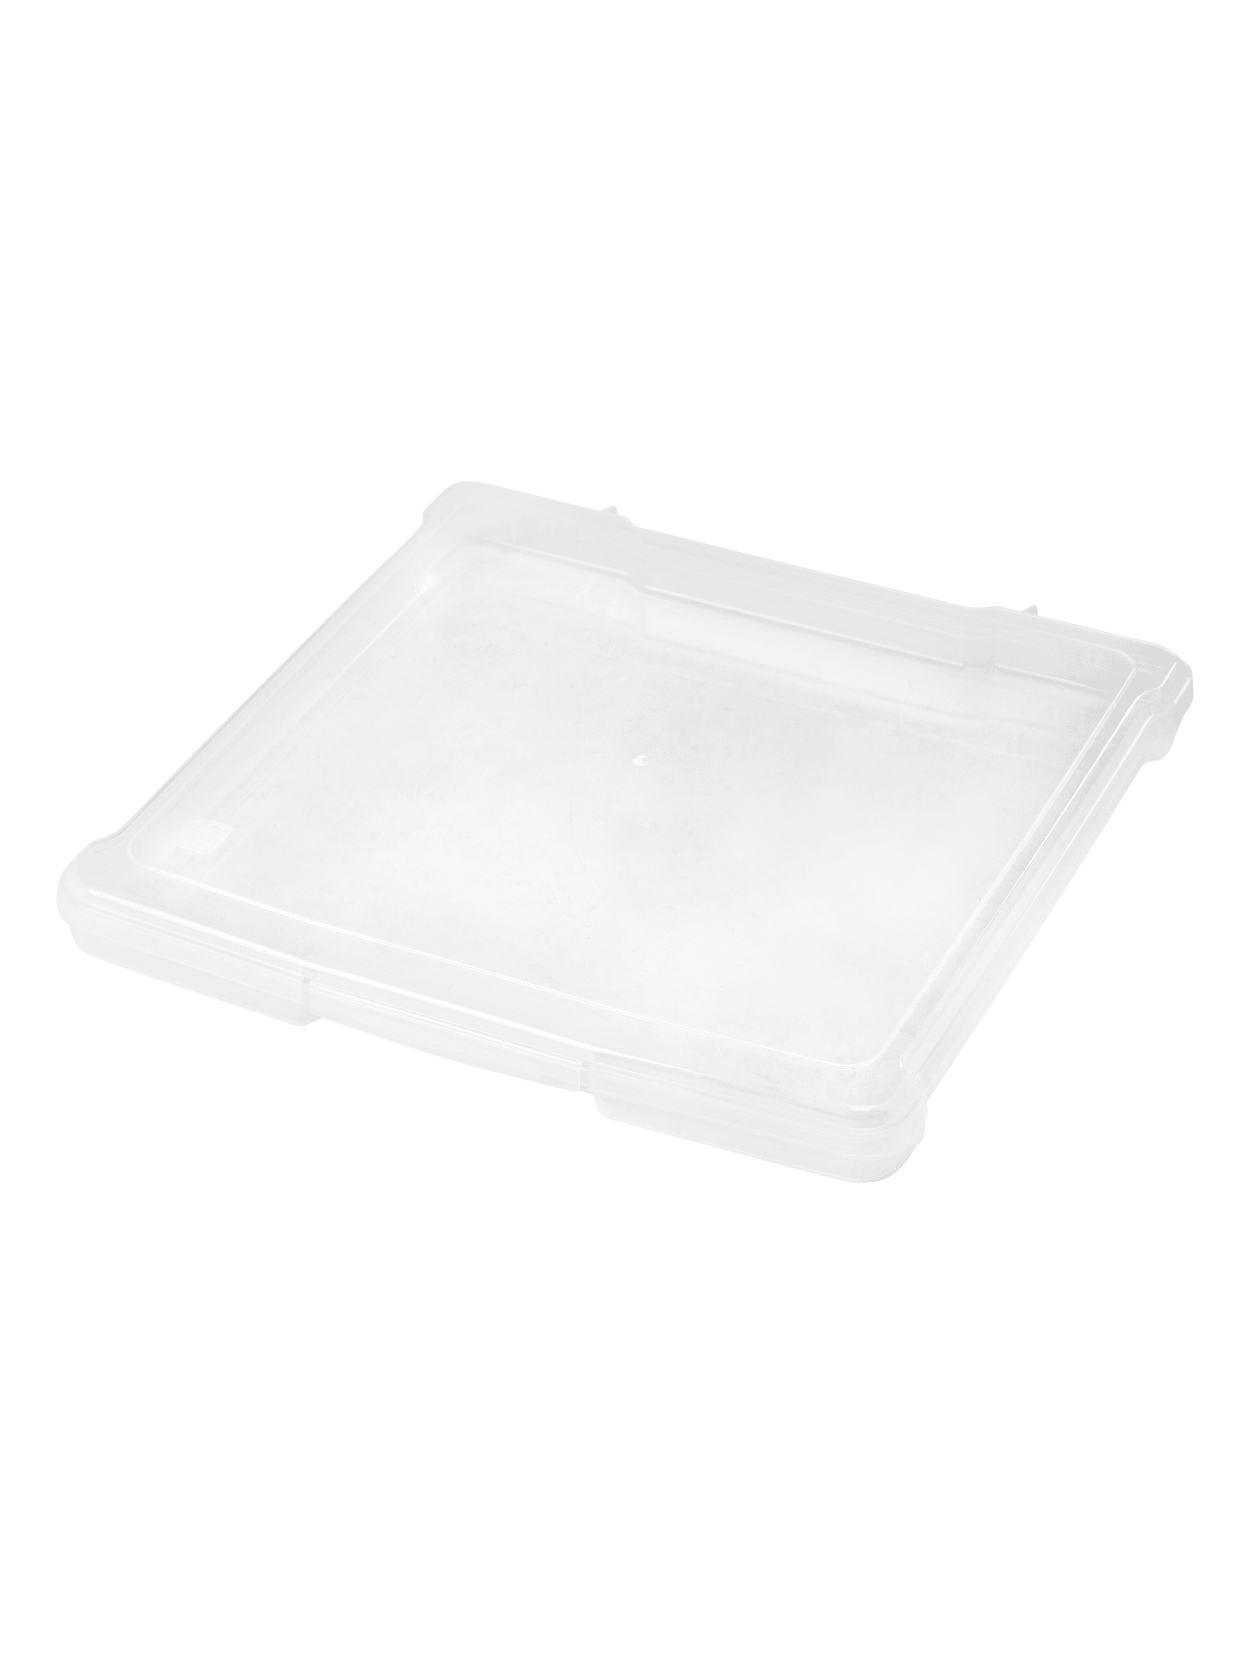 Clear 10 Pack IRIS 12 x 12 Slim Portable Project Case Home ...